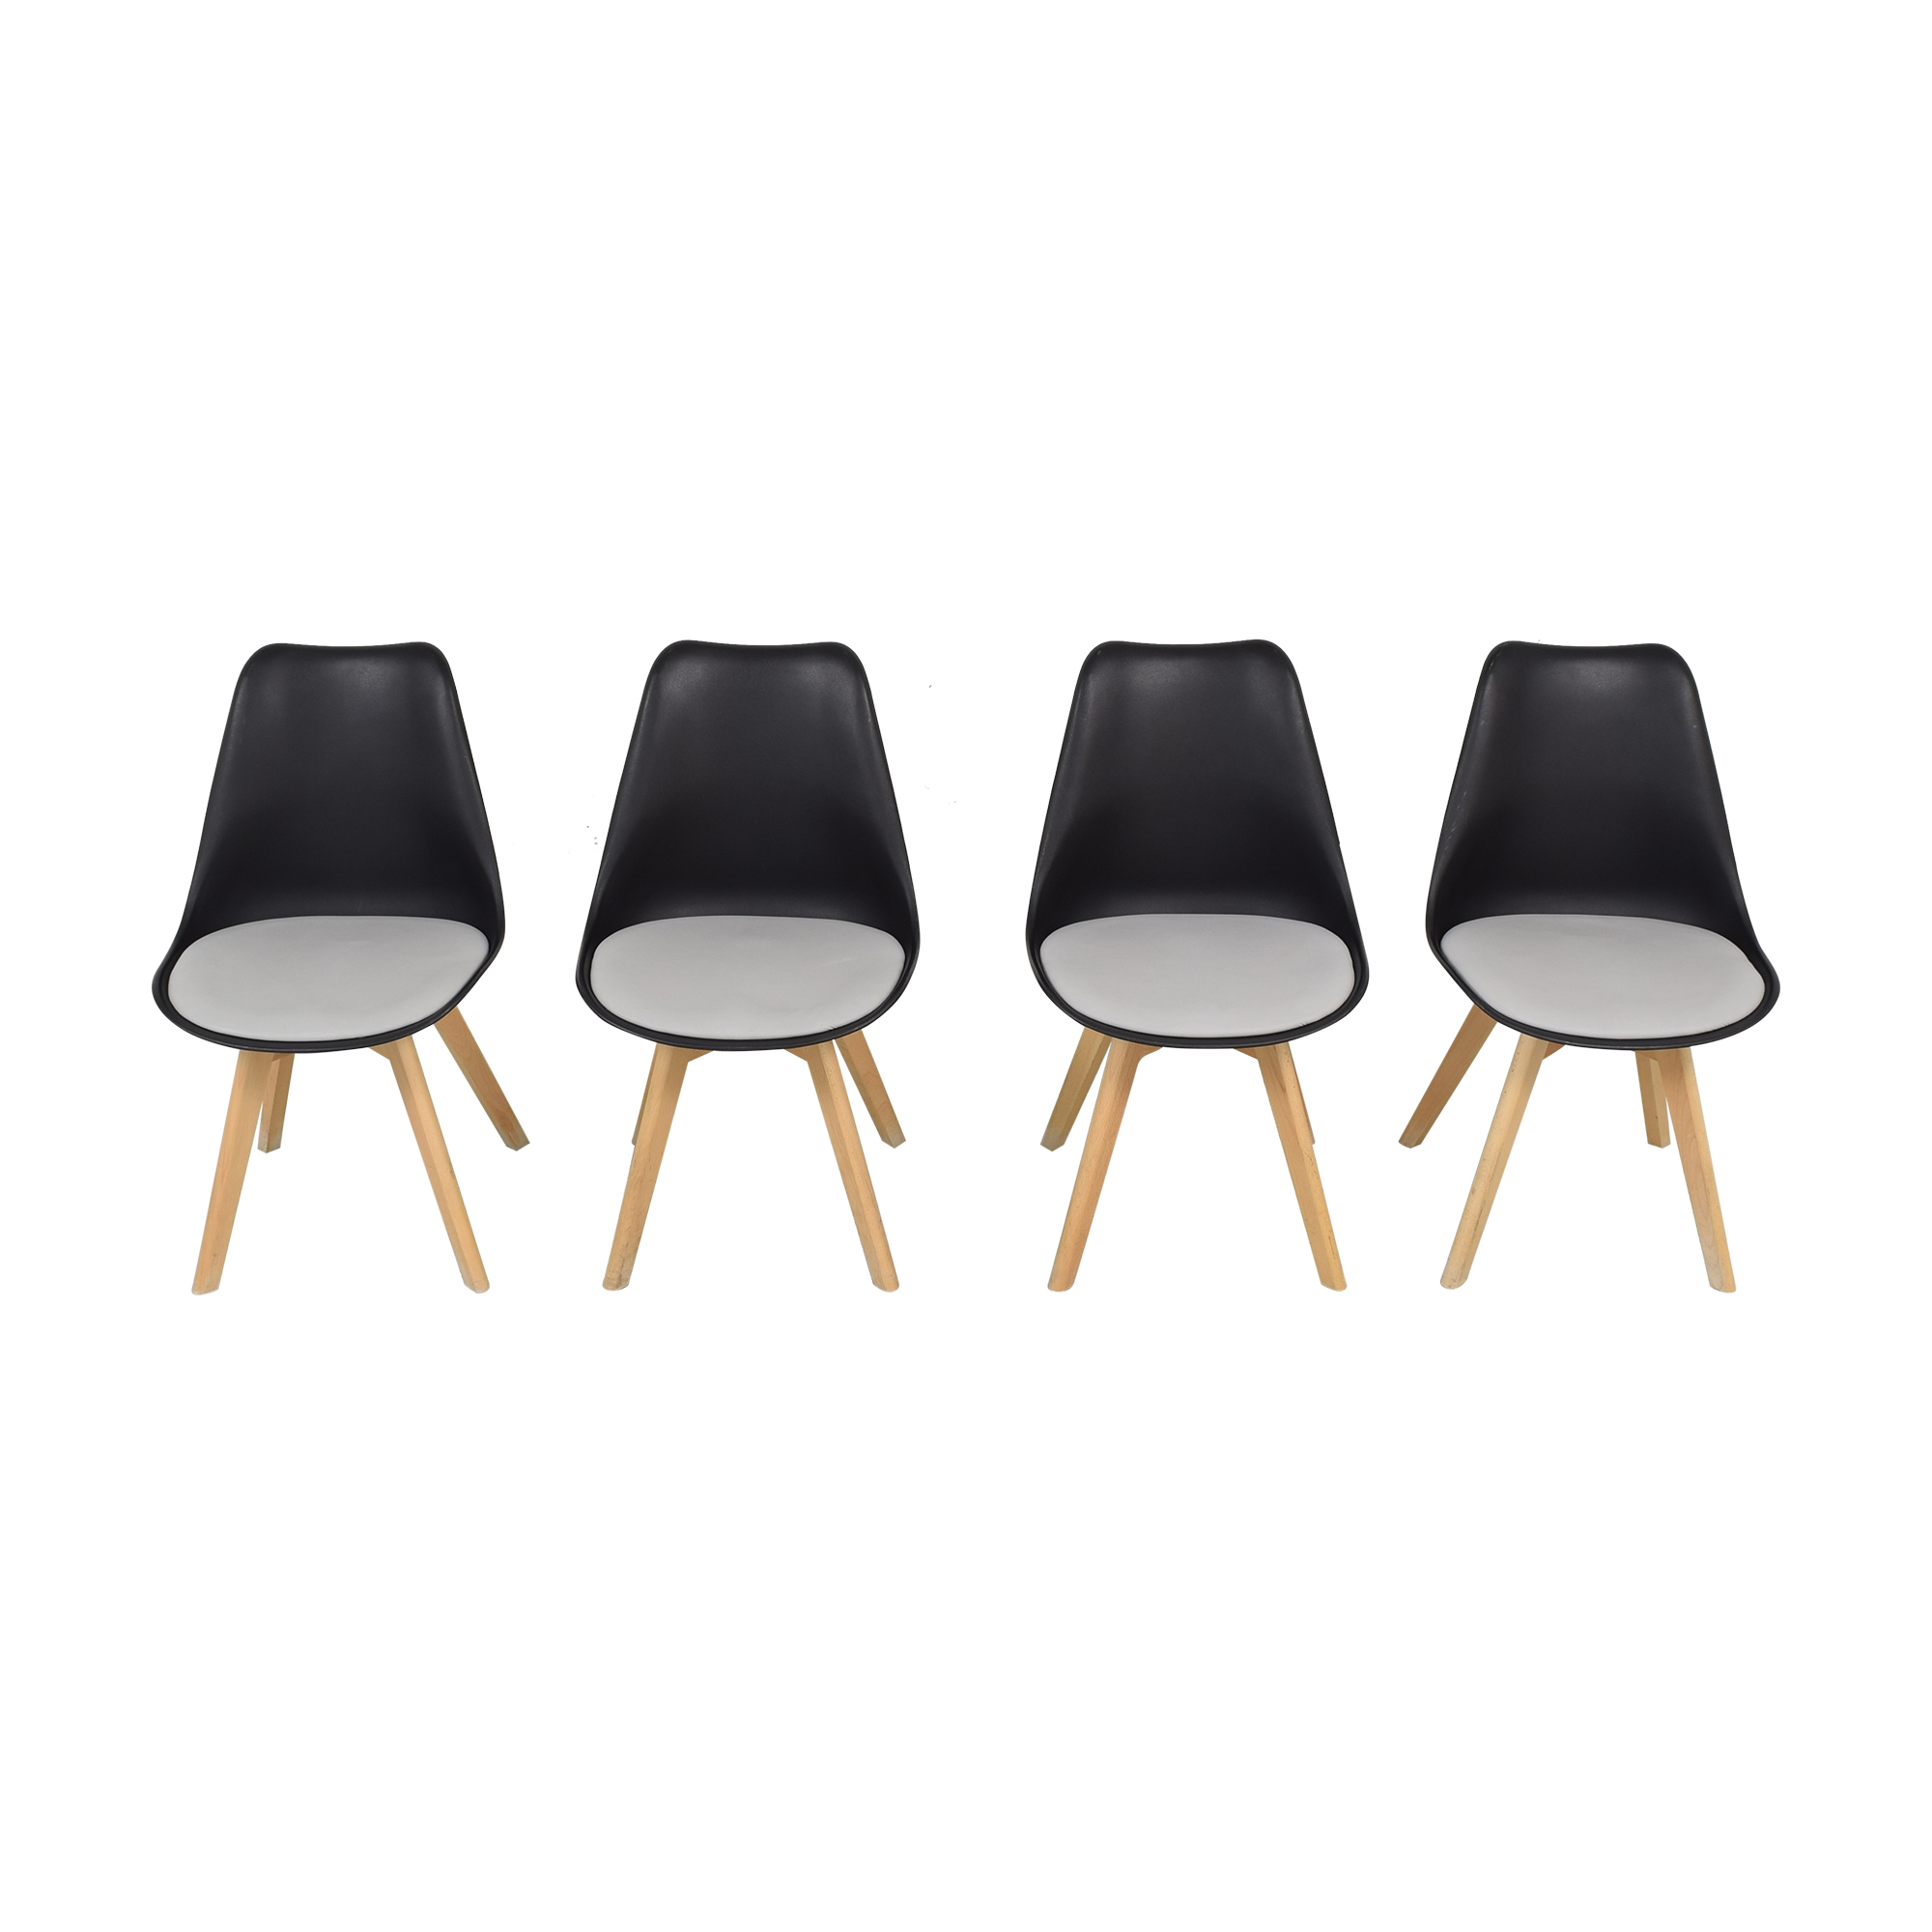 shop Black Molded Plastic Chairs with Wooden Legs  Dining Chairs